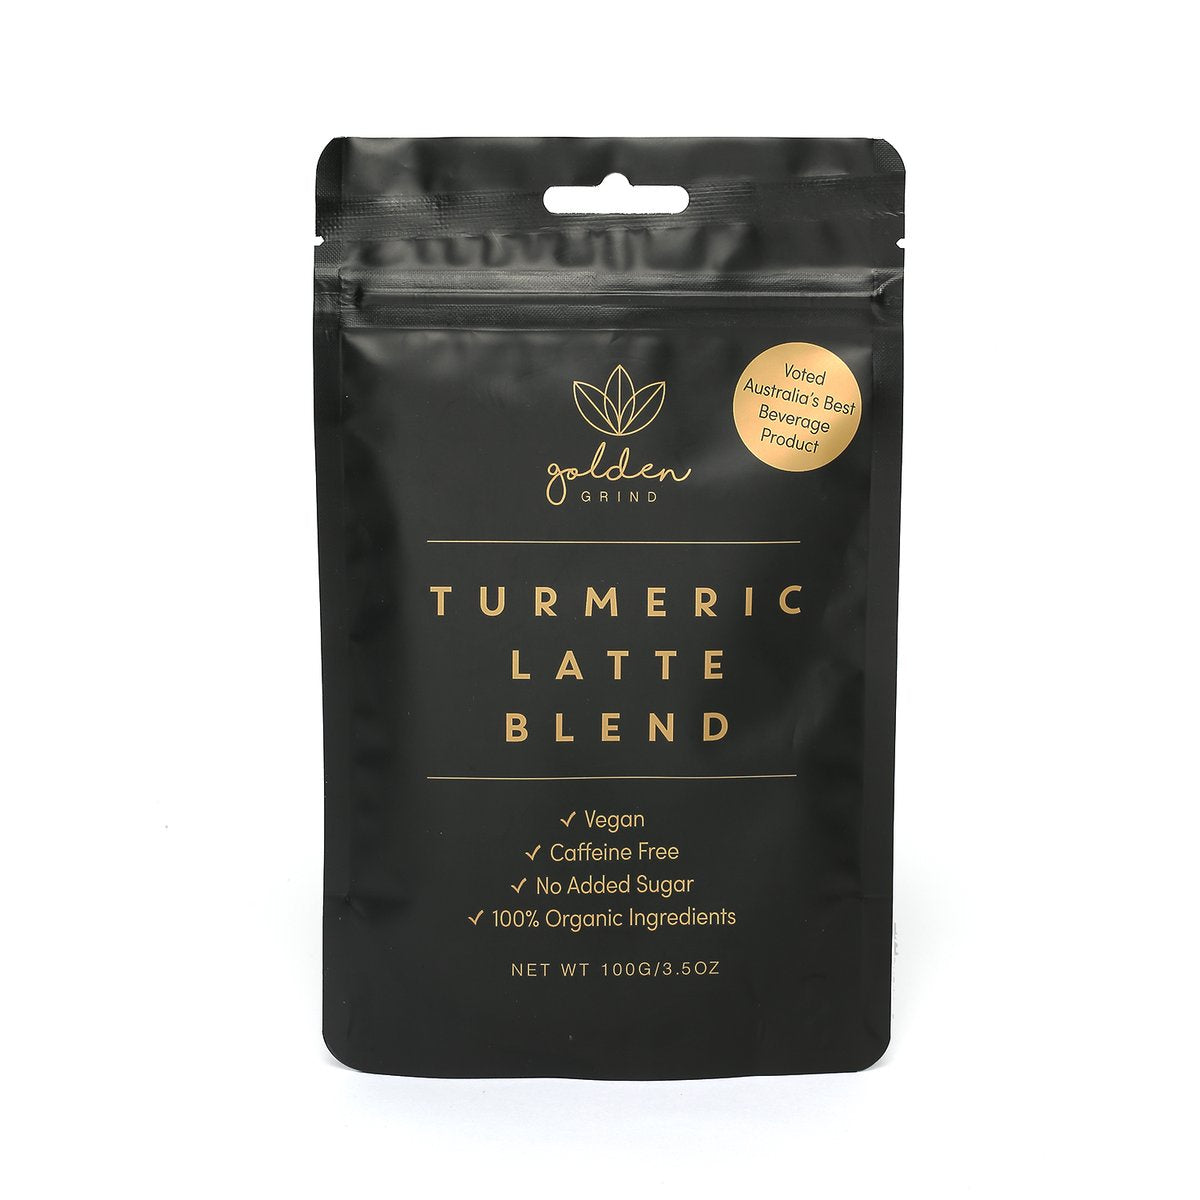 Golden Grind Turmeric Latte Blend 100gm